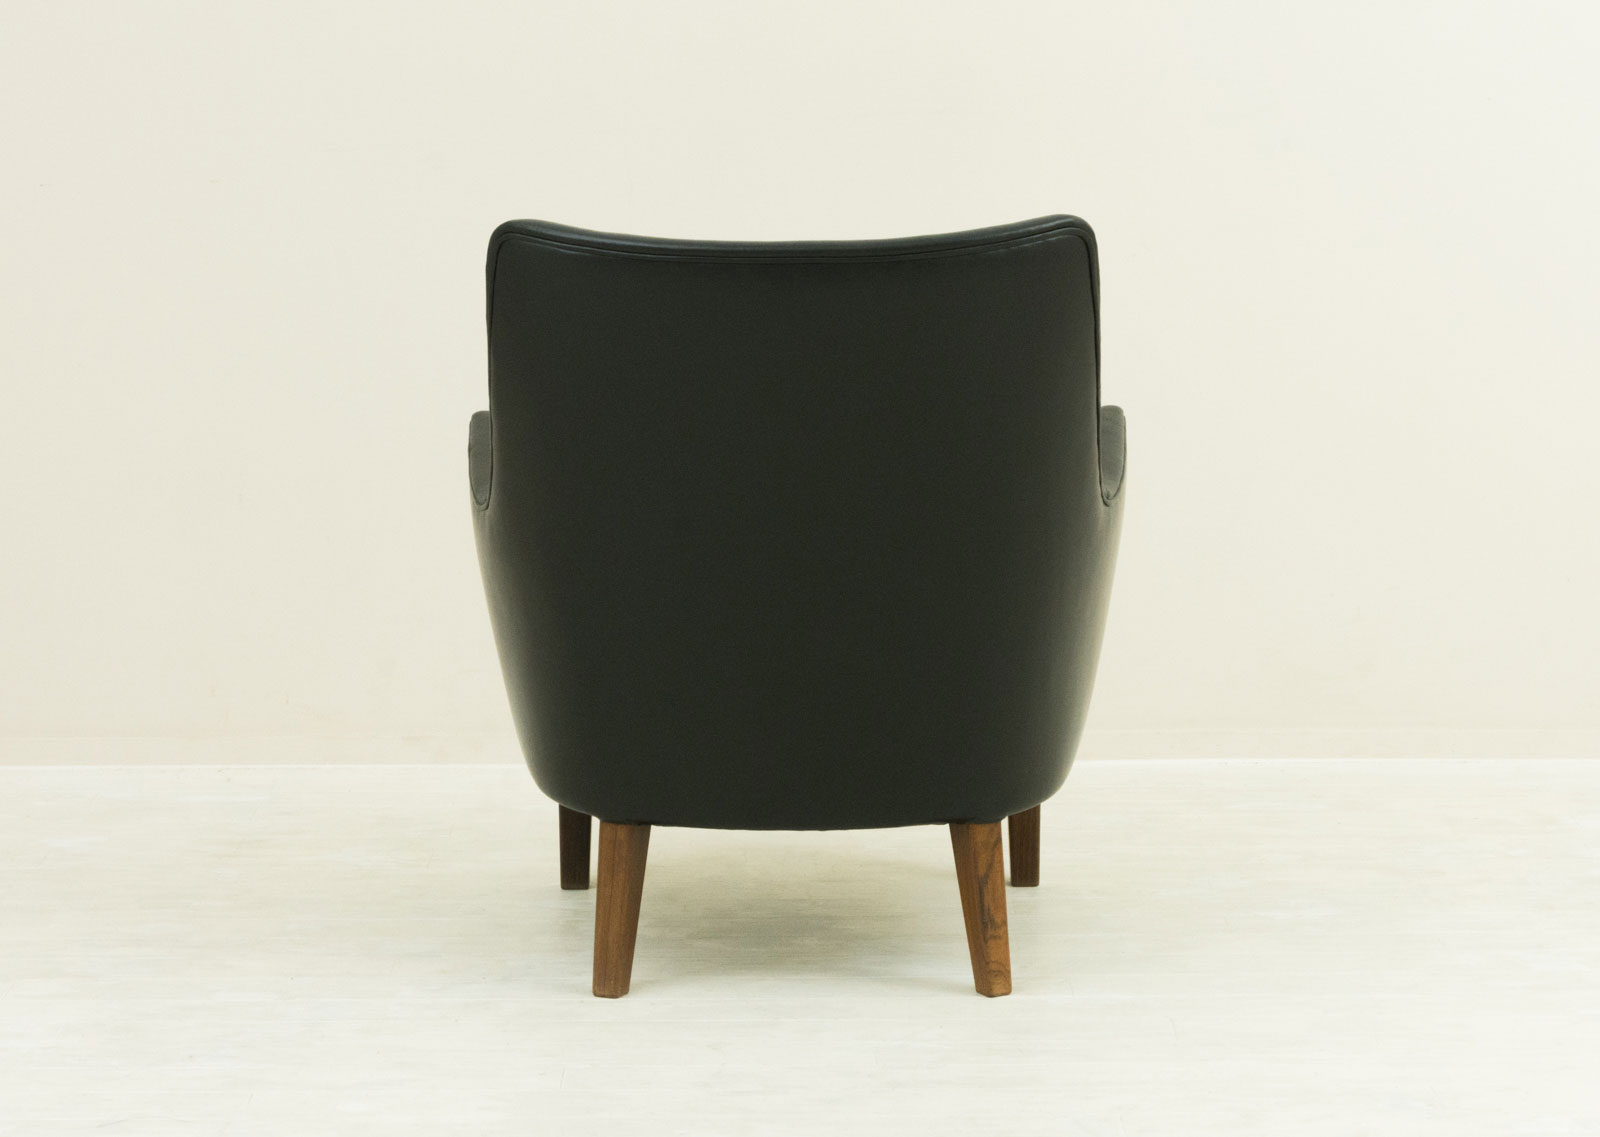 AV53 Arm Chair by Arne Vodder